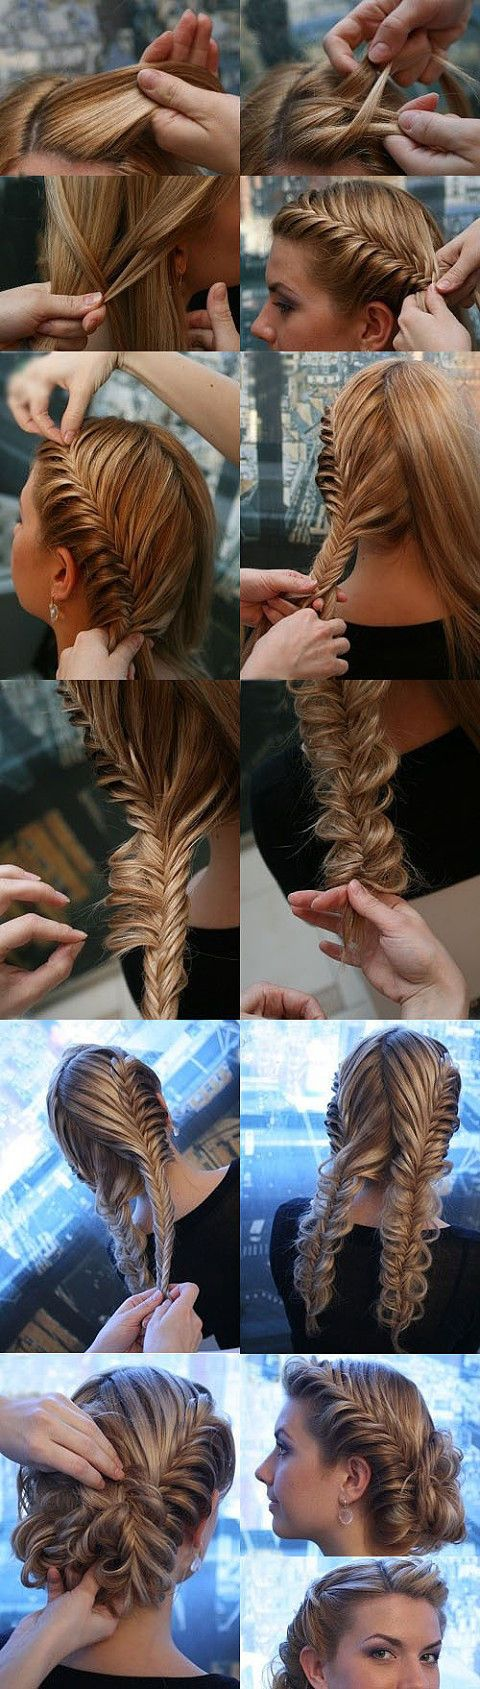 DIY Bilateral Fish Bone Braid Hairstyle DIY Projects / UsefulDIY.com on imgfave